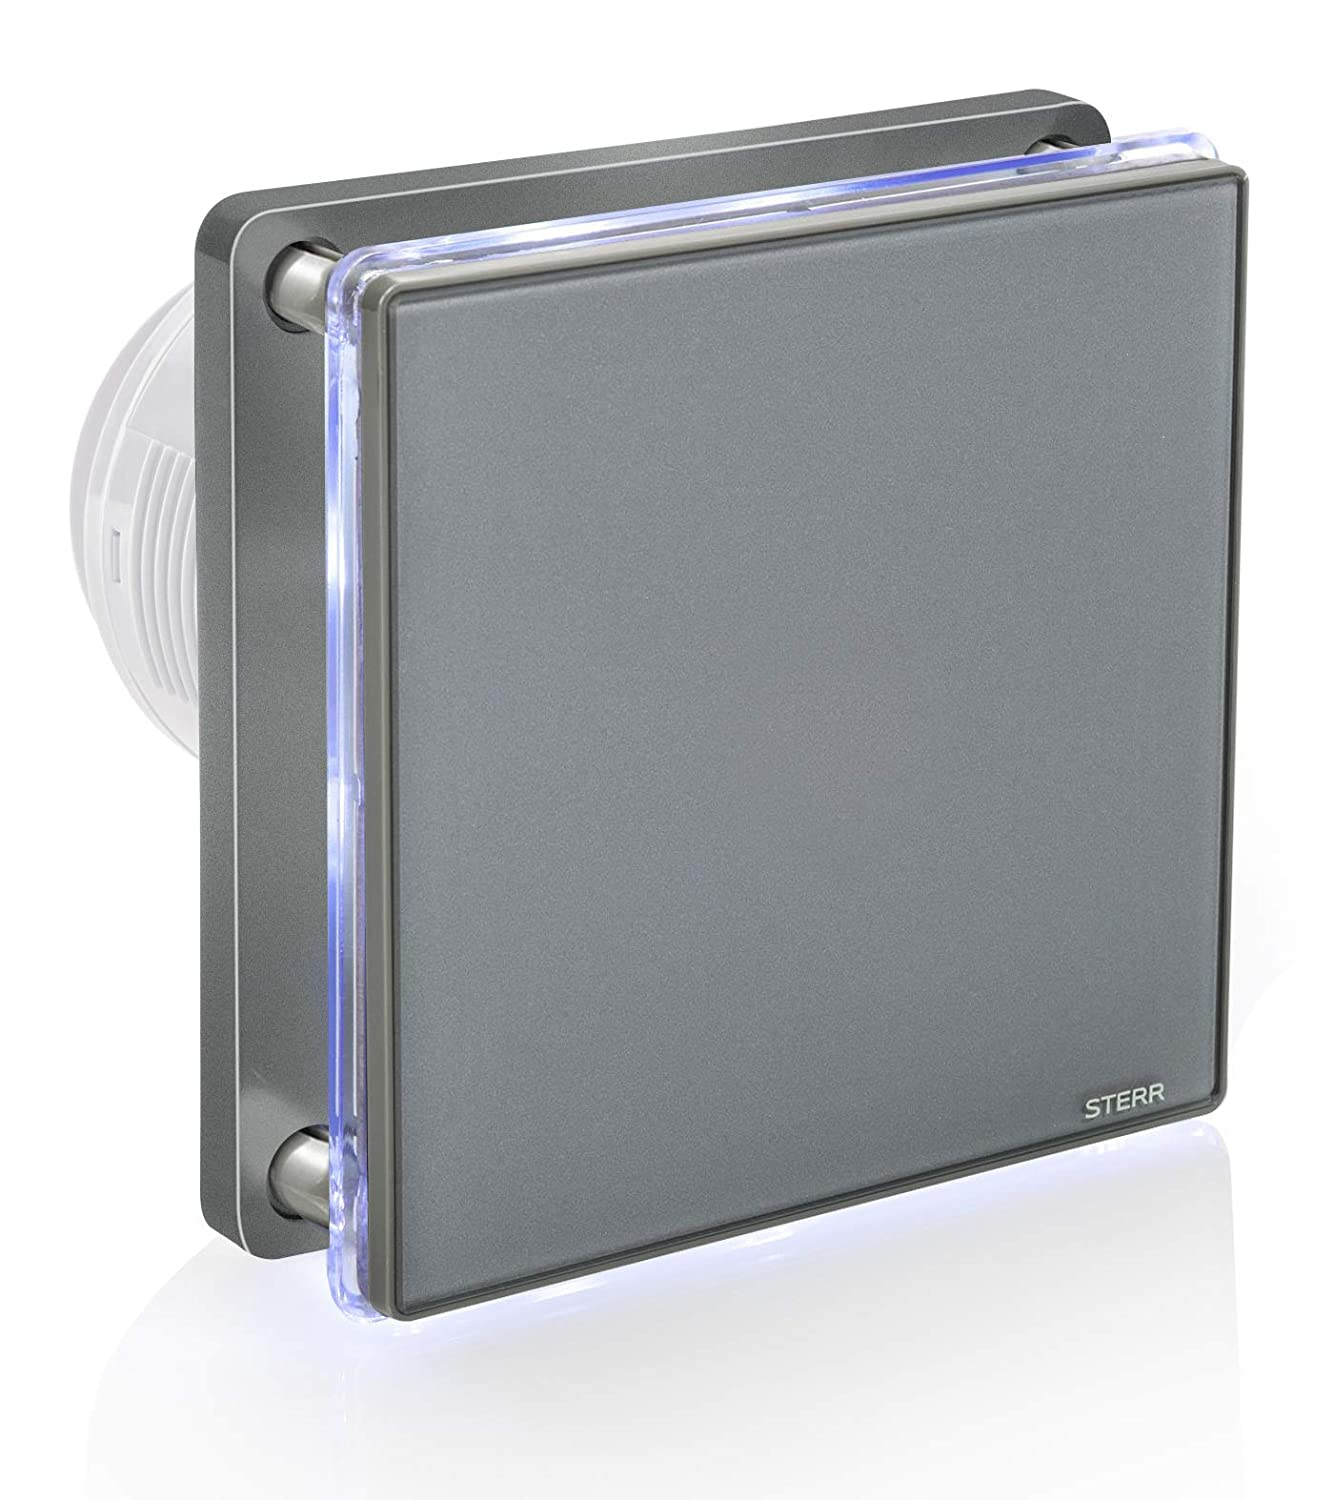 4 BFS100L-G STERR Grey Bathroom Extractor Fan with LED Backlight 100 mm